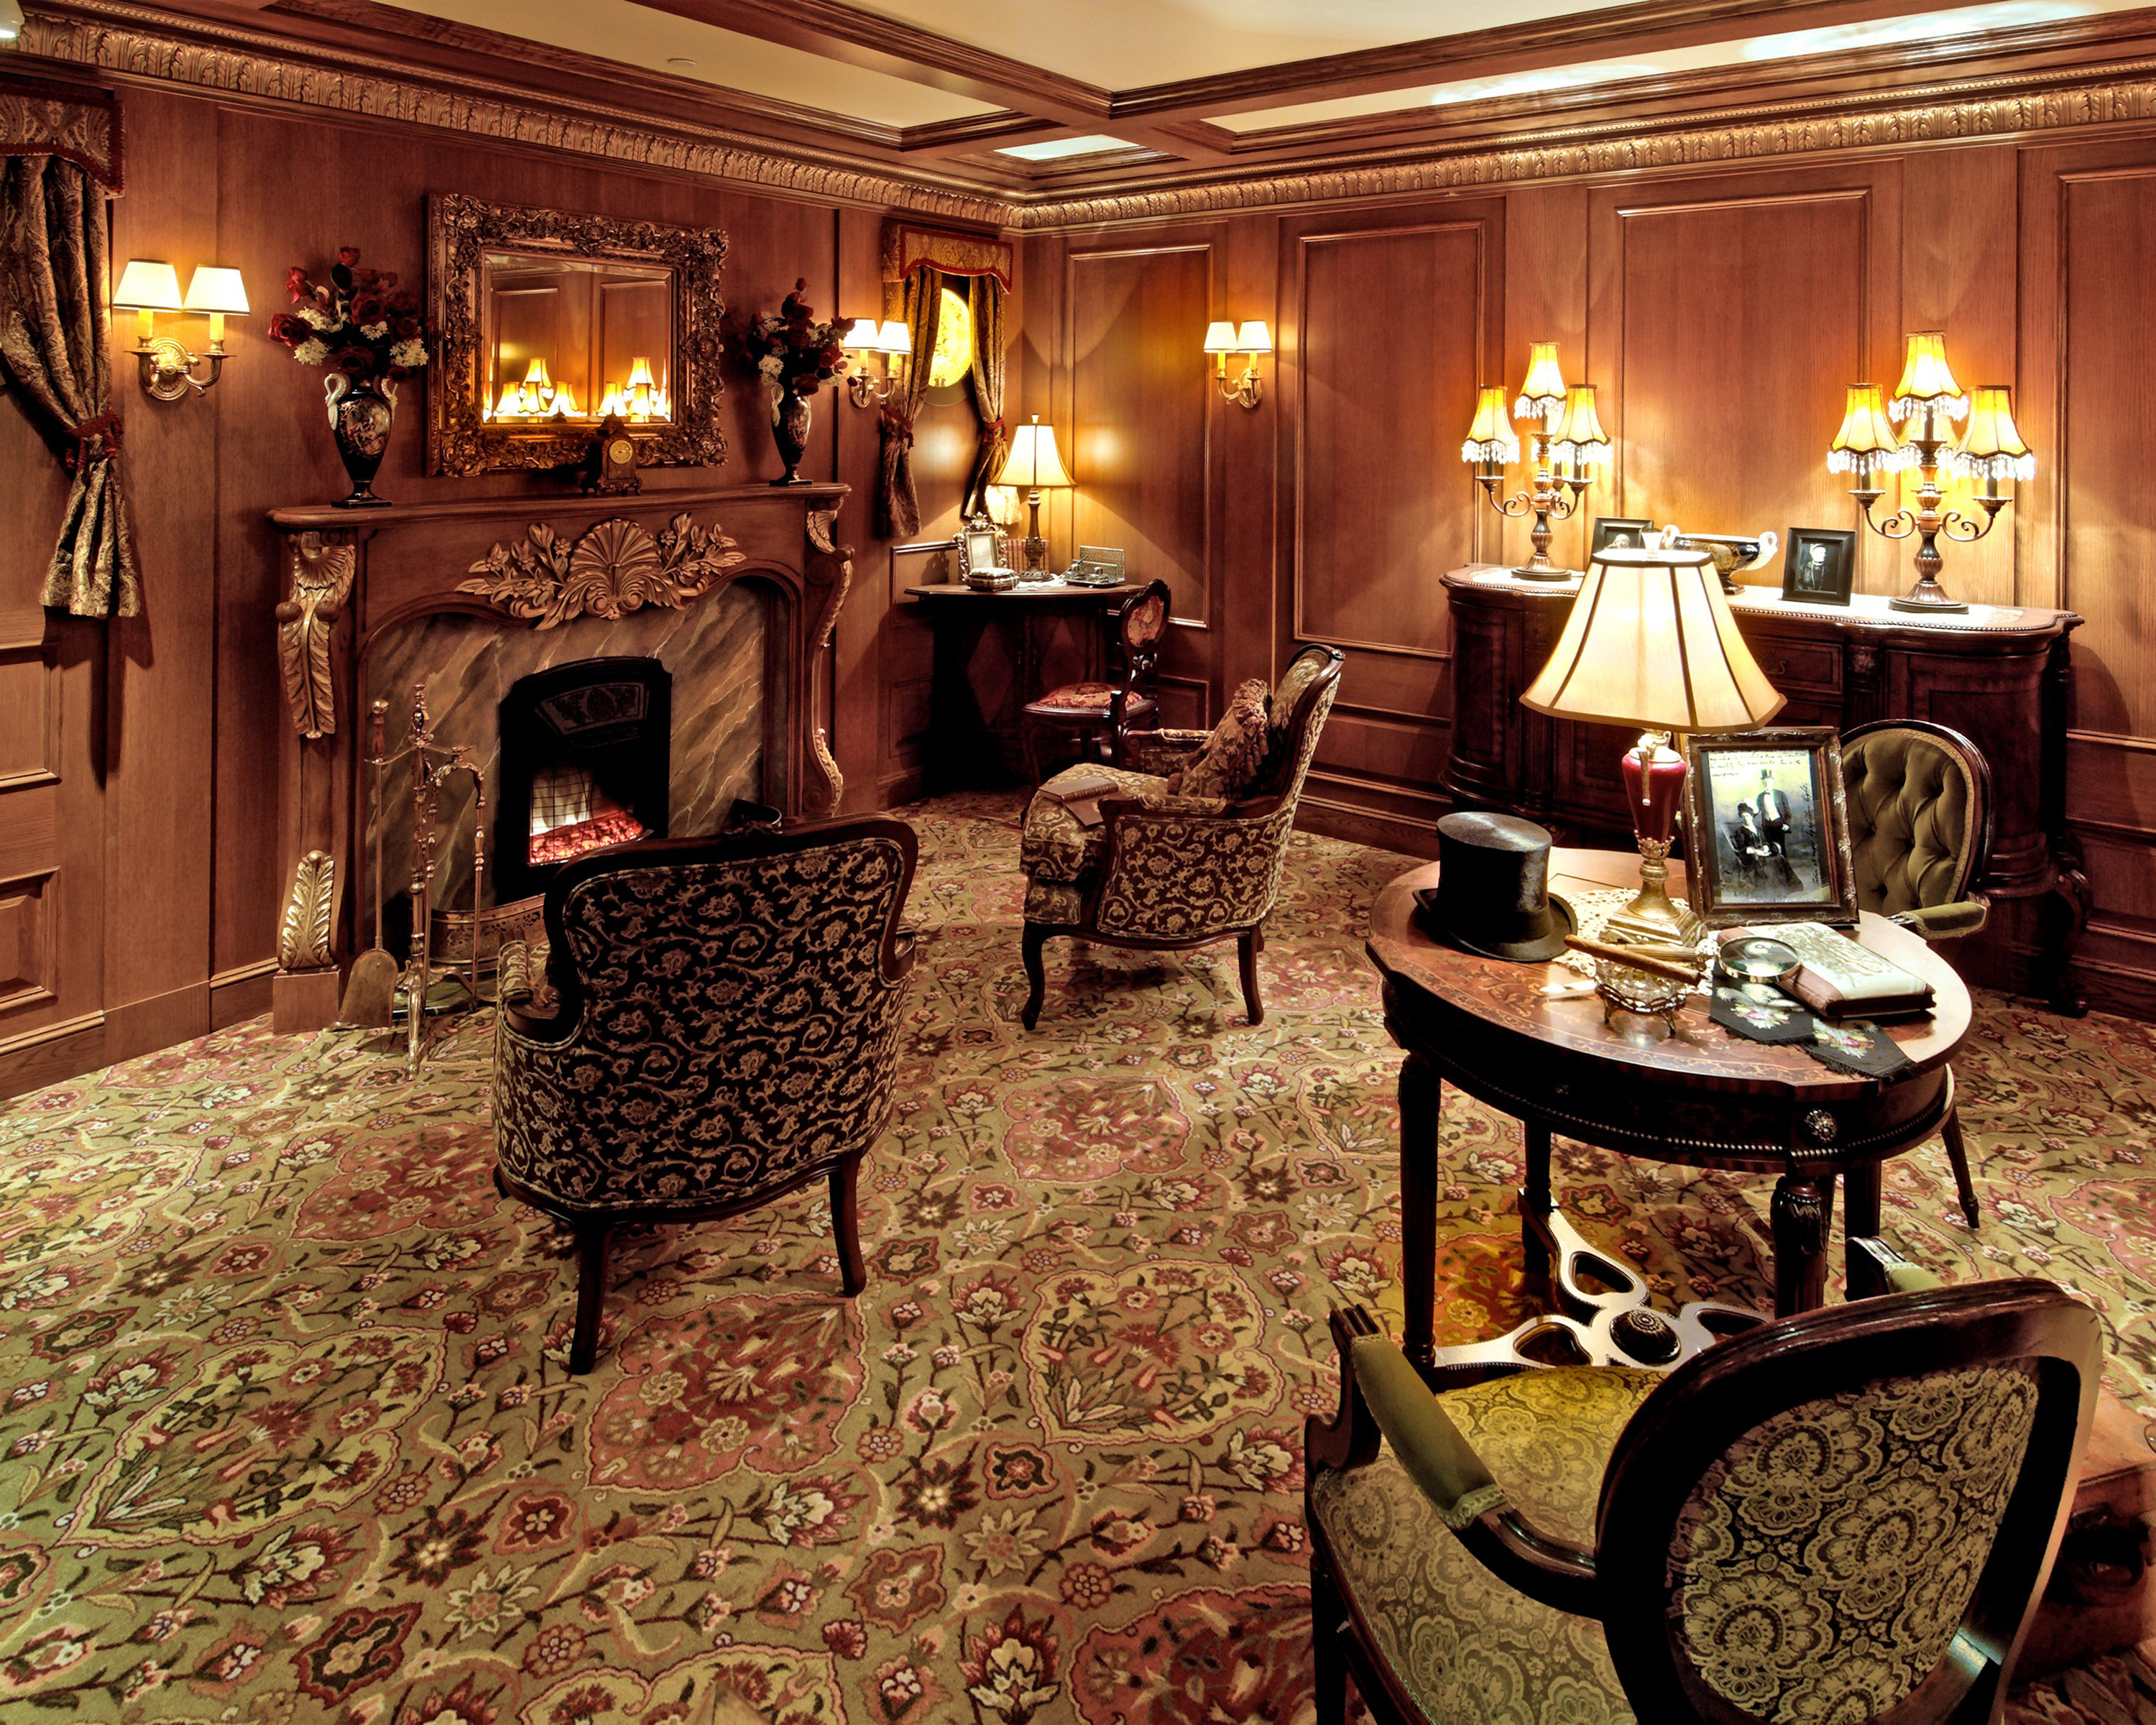 http://www.titanicpigeonforge.com/wp-content/uploads/2015/07/titanic-pigeon-forge-interior06.jpg